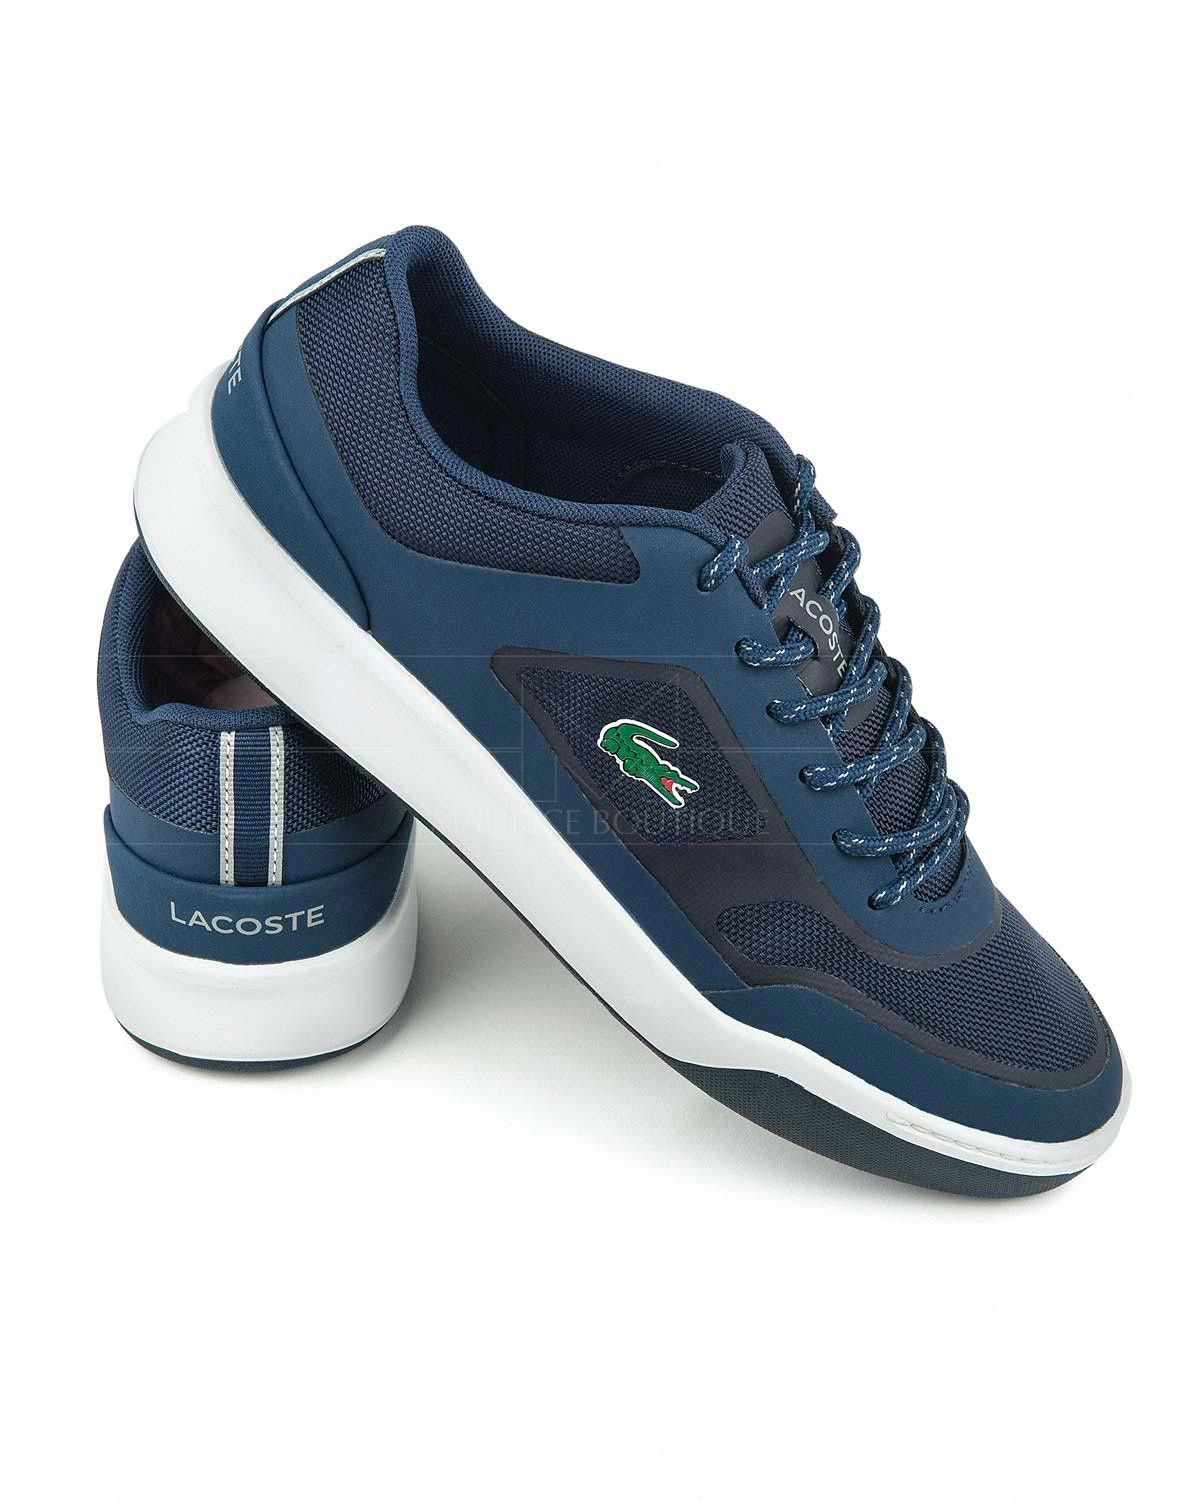 LACOSTE SHOES Zapatillas Lacoste - Explorateur Sport